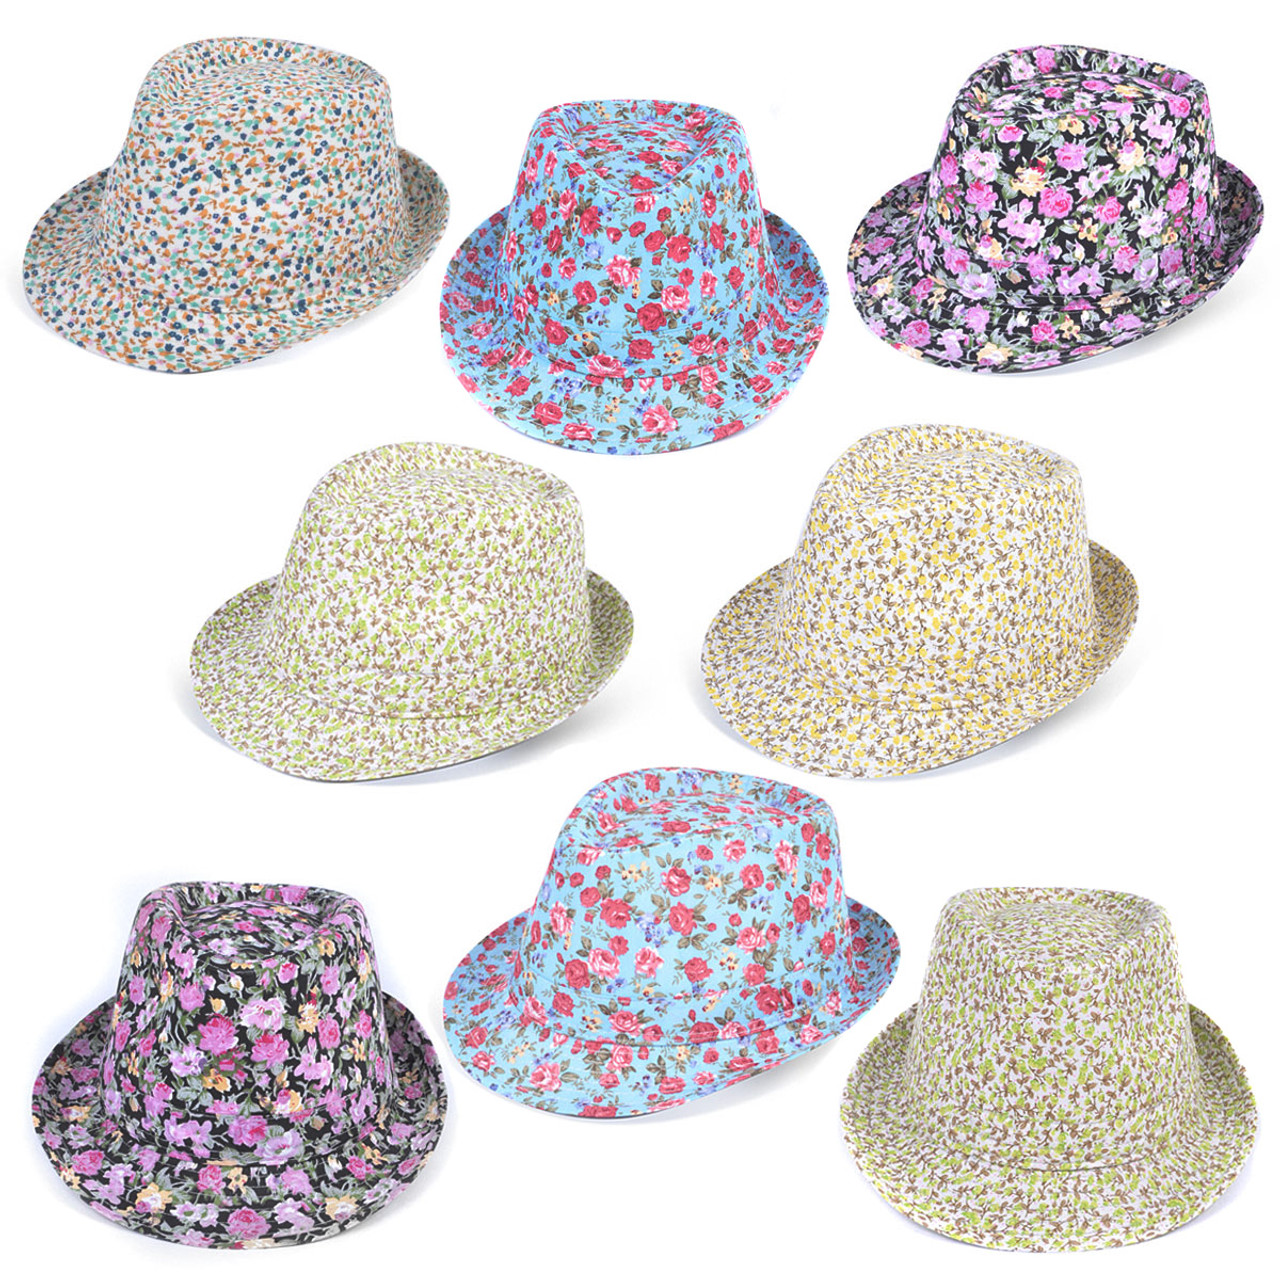 36pc Mixed Unisex Floral Trilby Fedora Hats H7800-CO 4f9625a2926b